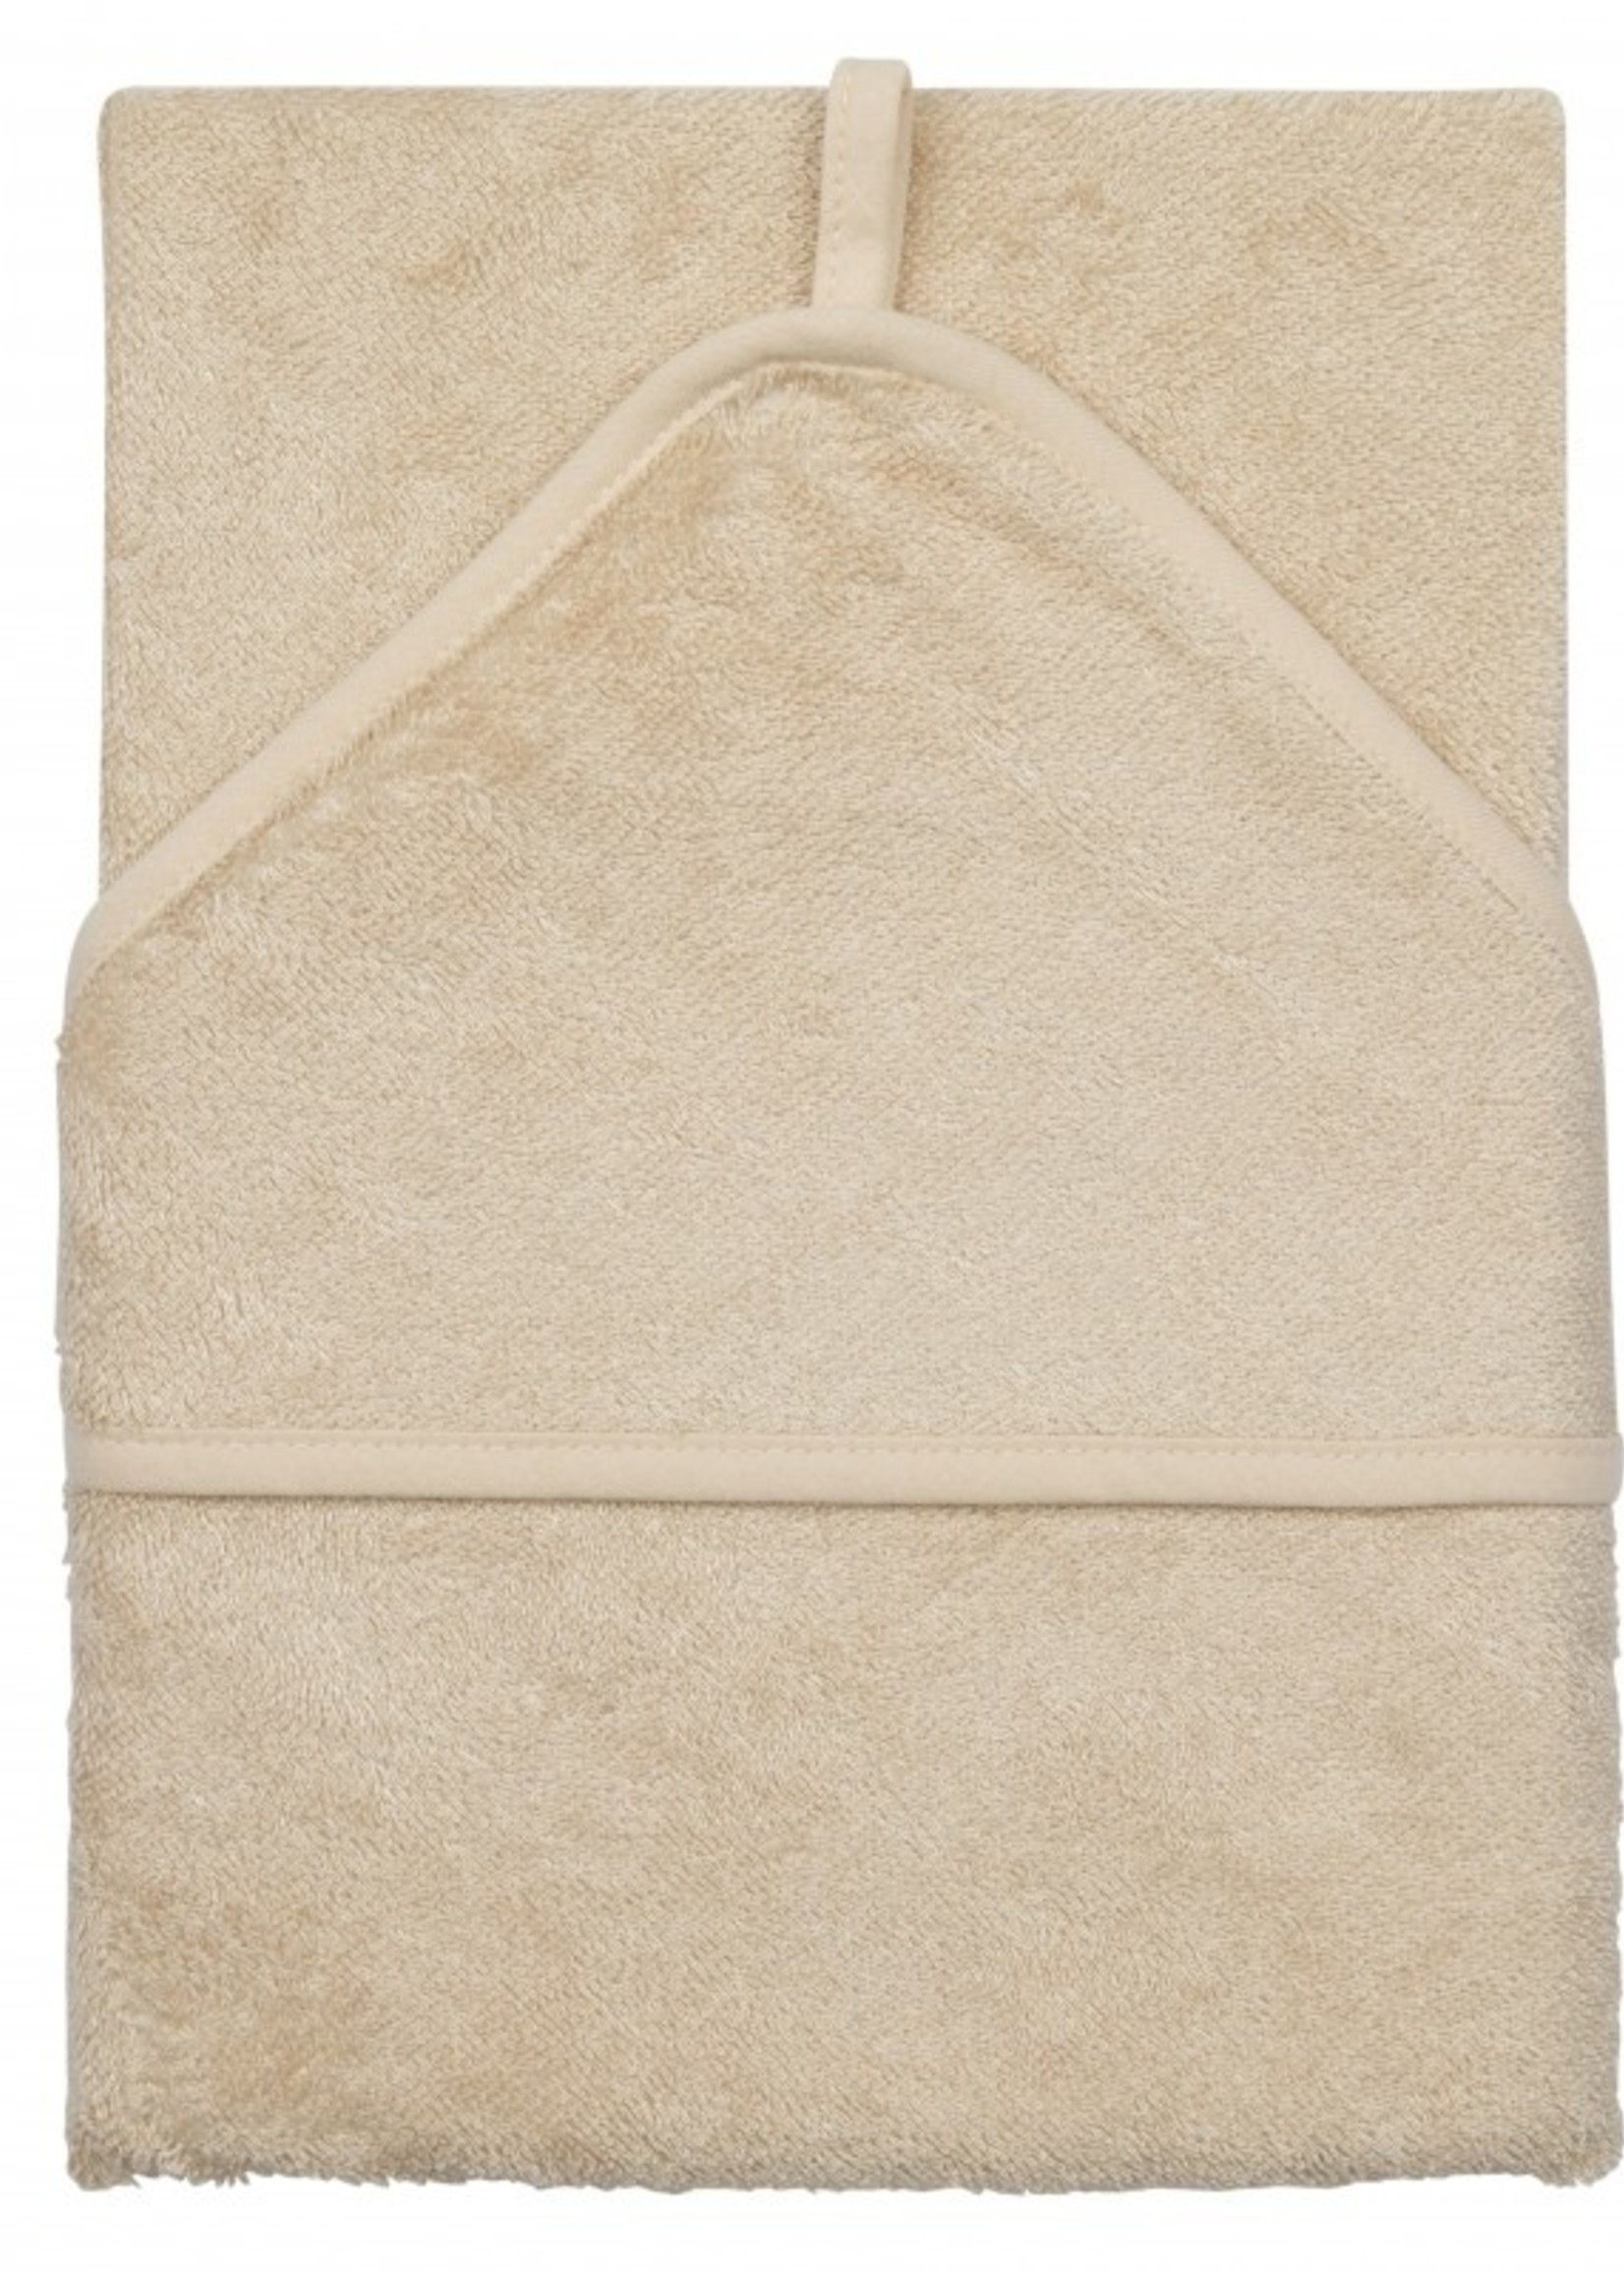 Timboo Hooded towel - Frosted Almond